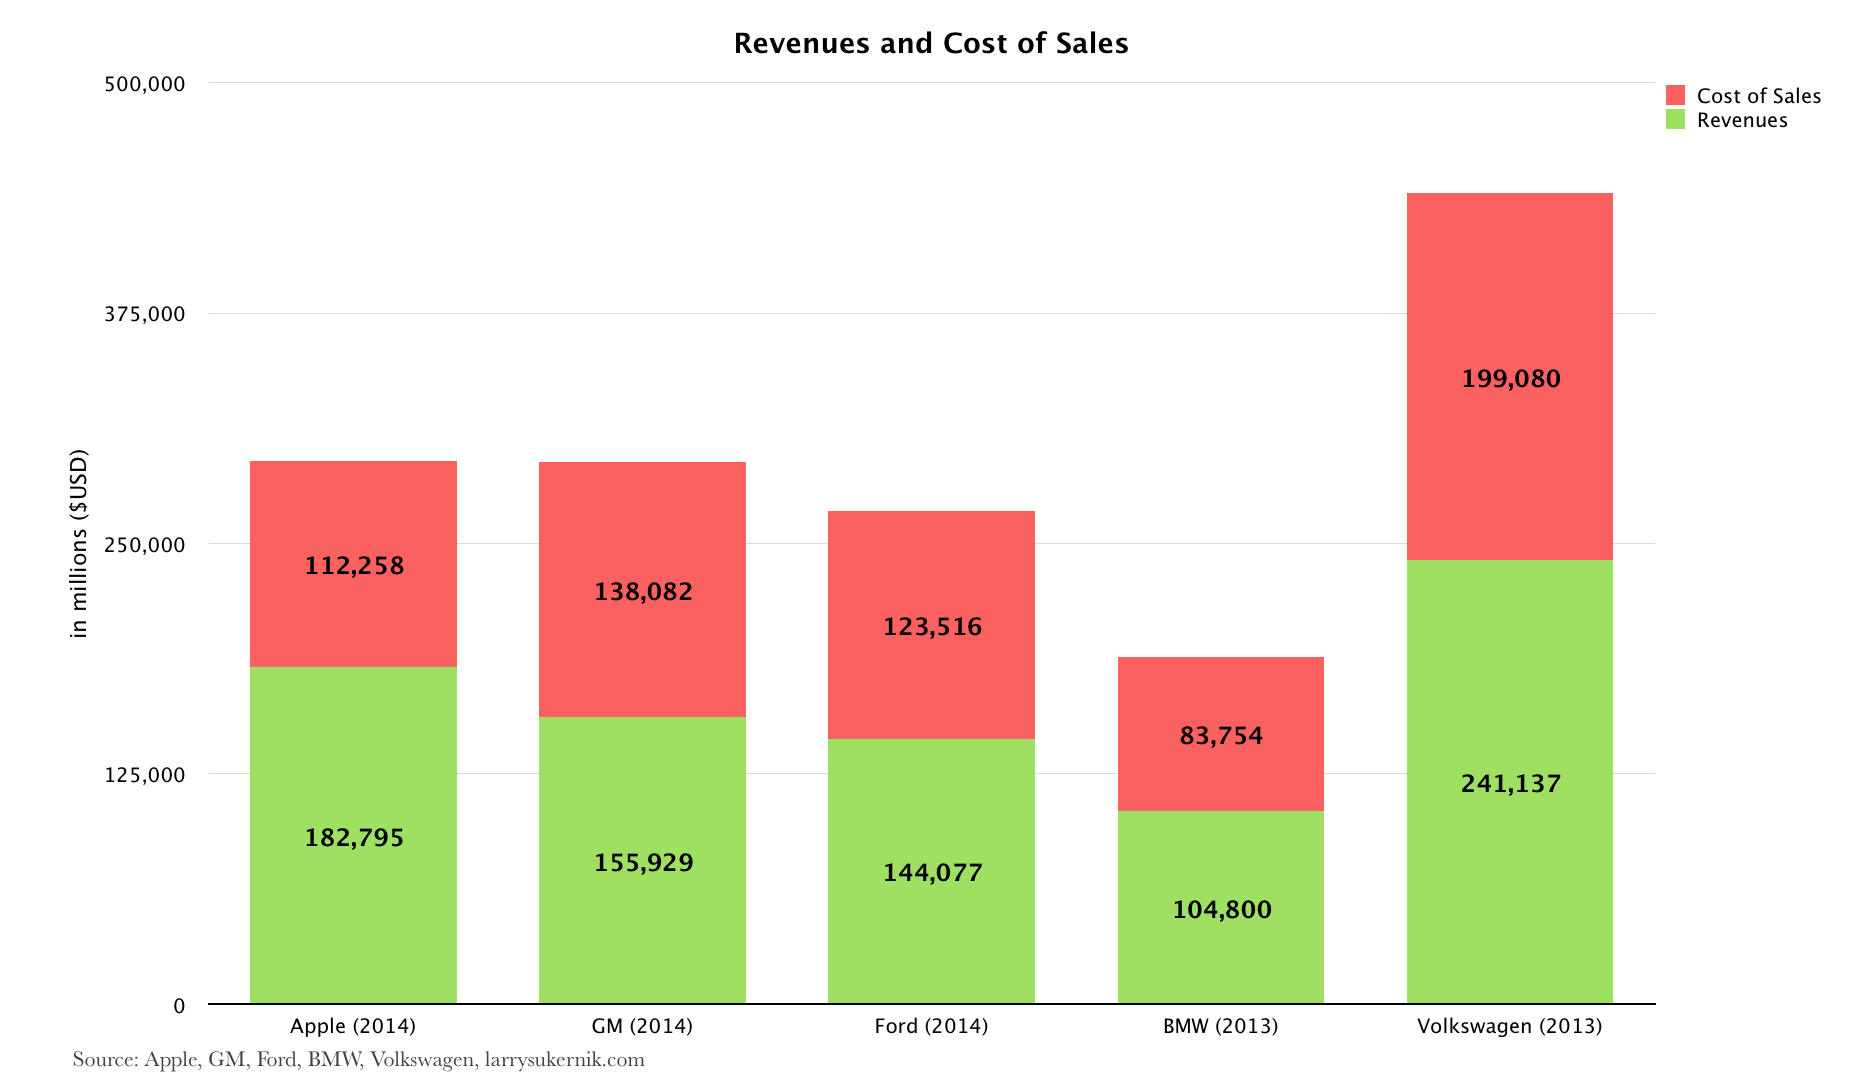 Revenue and Cost of Sales